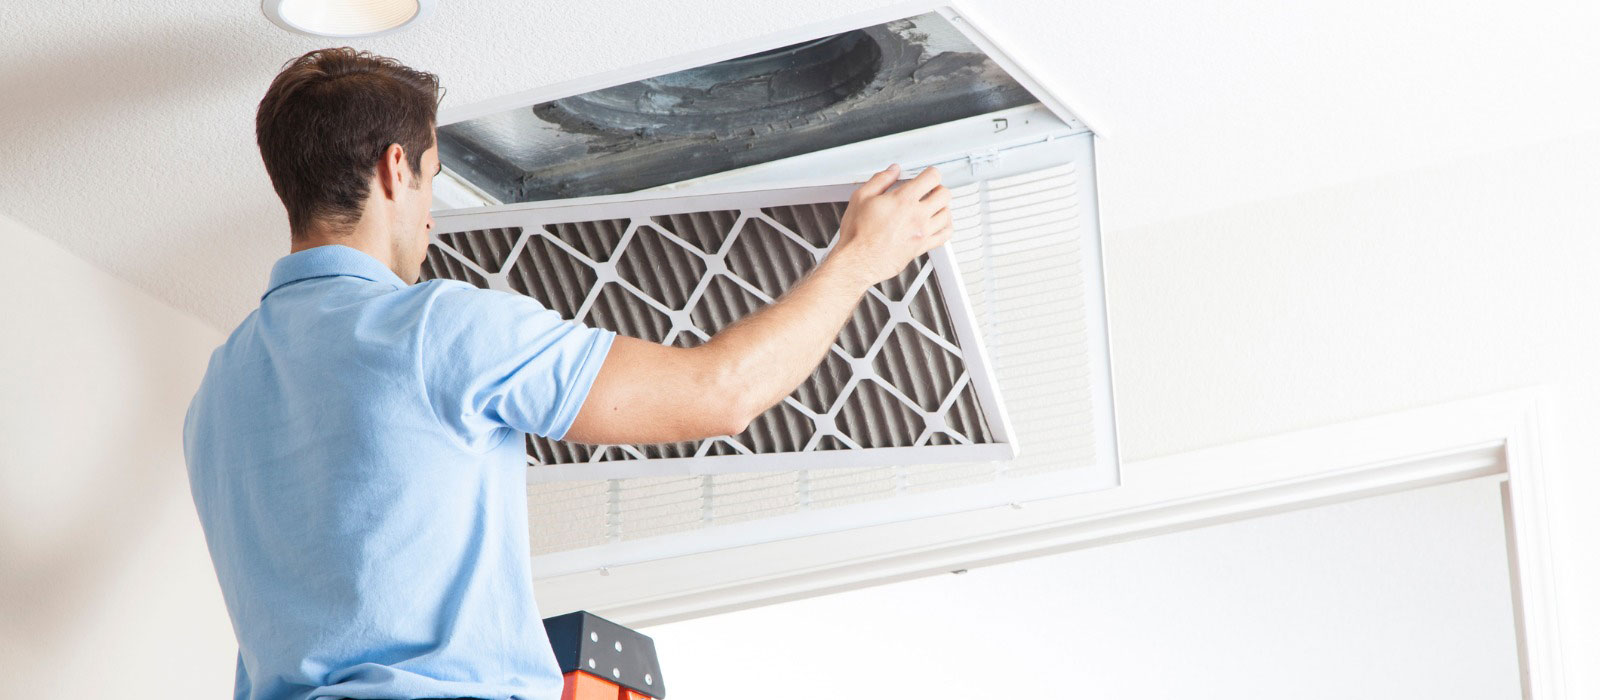 Media Filters vs. HEPA Filters vs. Electronic Air Purifiers